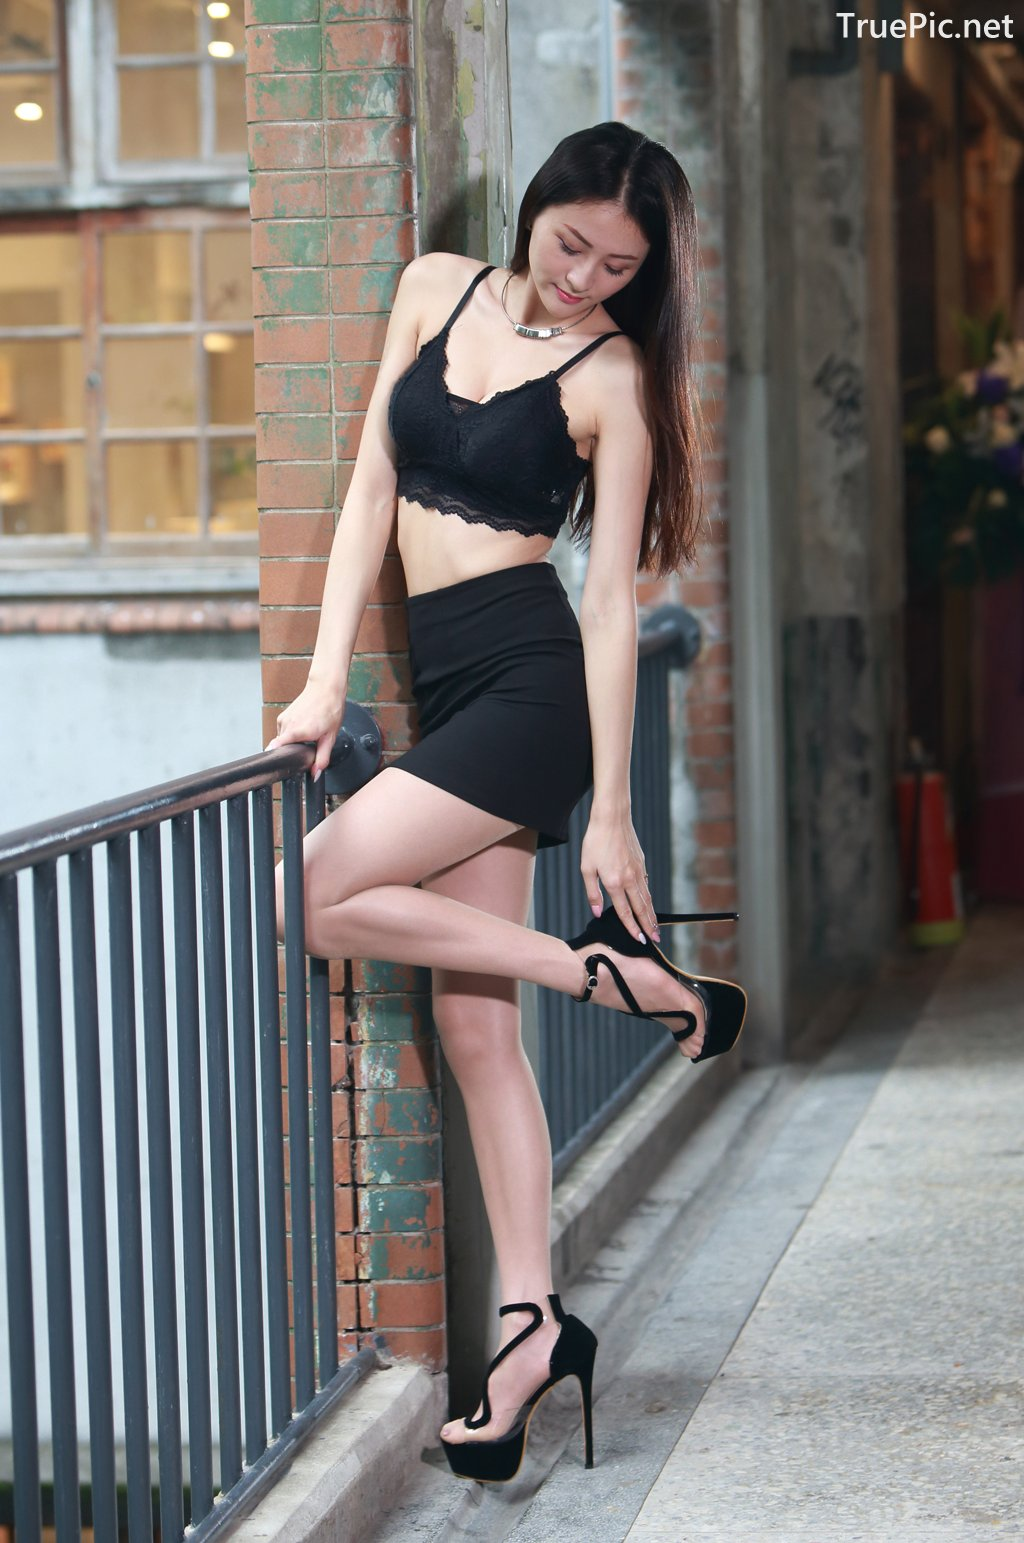 Image-Taiwanese-Beautiful-Long-Legs-Girl-雪岑Lola-Black-Sexy-Short-Pants-and-Crop-Top-Outfit-TruePic.net- Picture-22